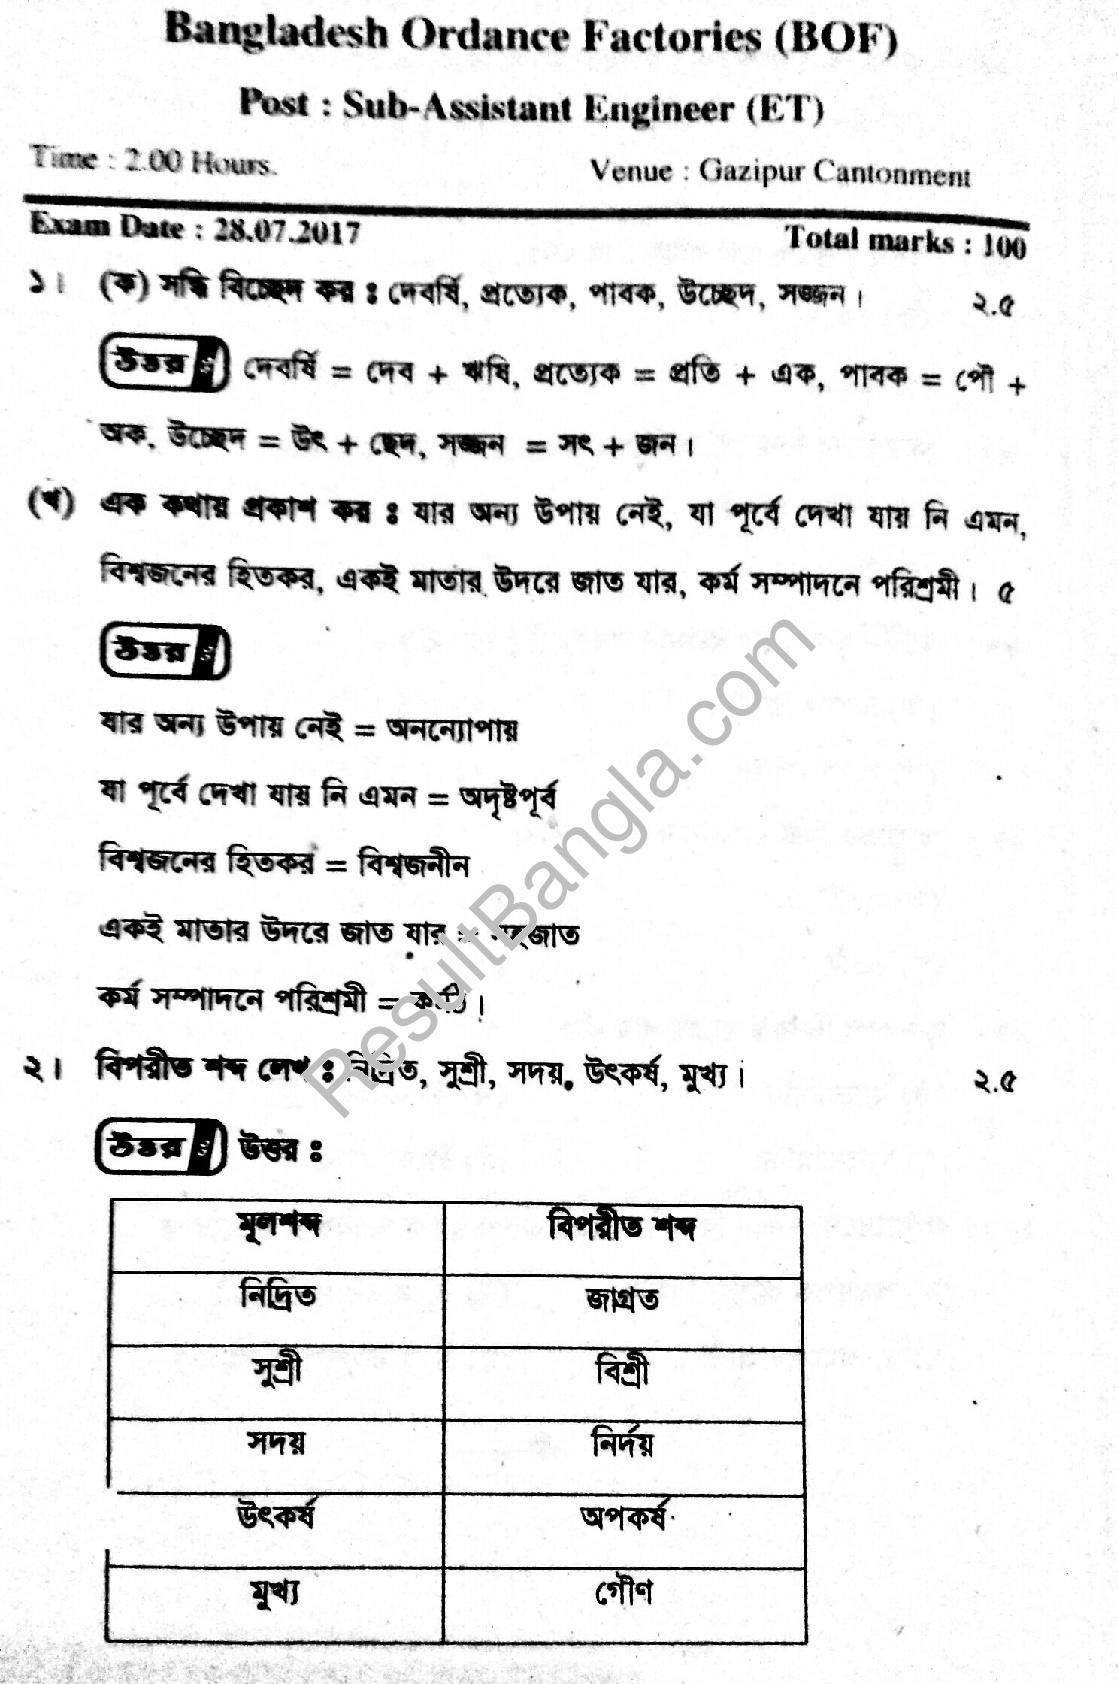 Bangladesh Ordnance Factories Job Question Solution 2017